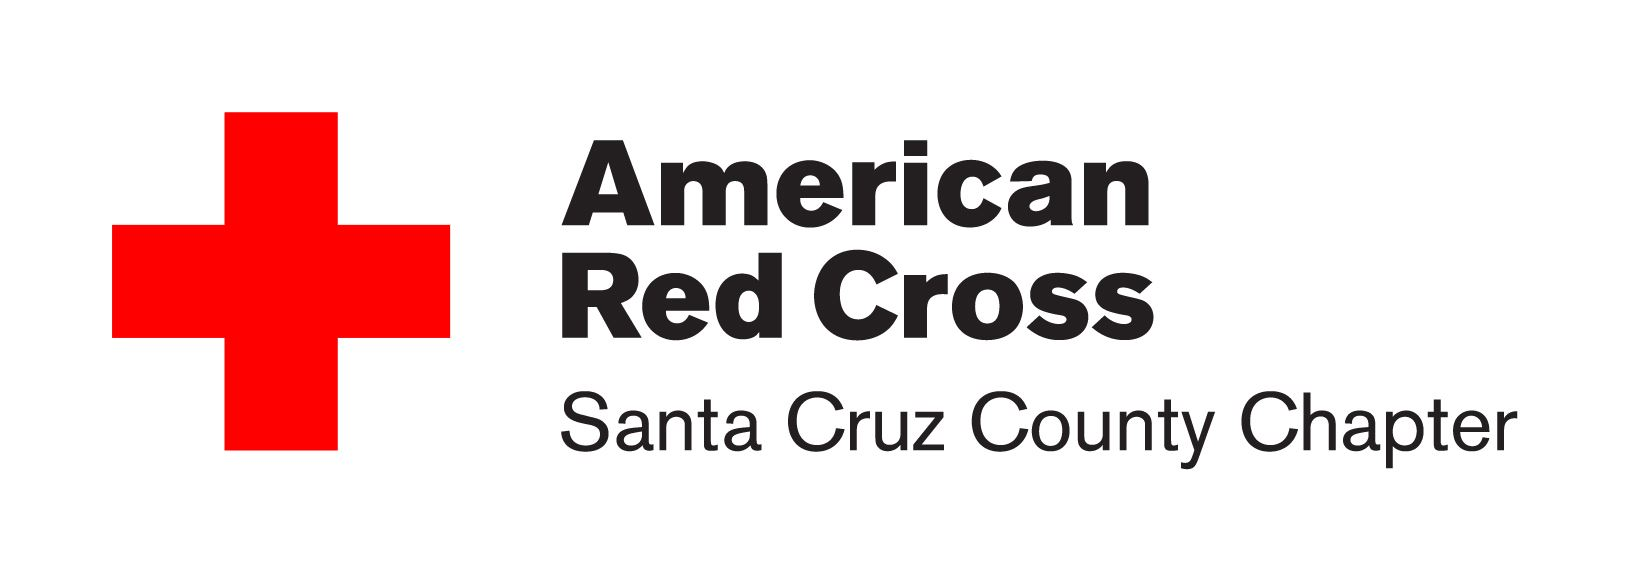 American Red Cross Santa Cruz County Chapter Logo